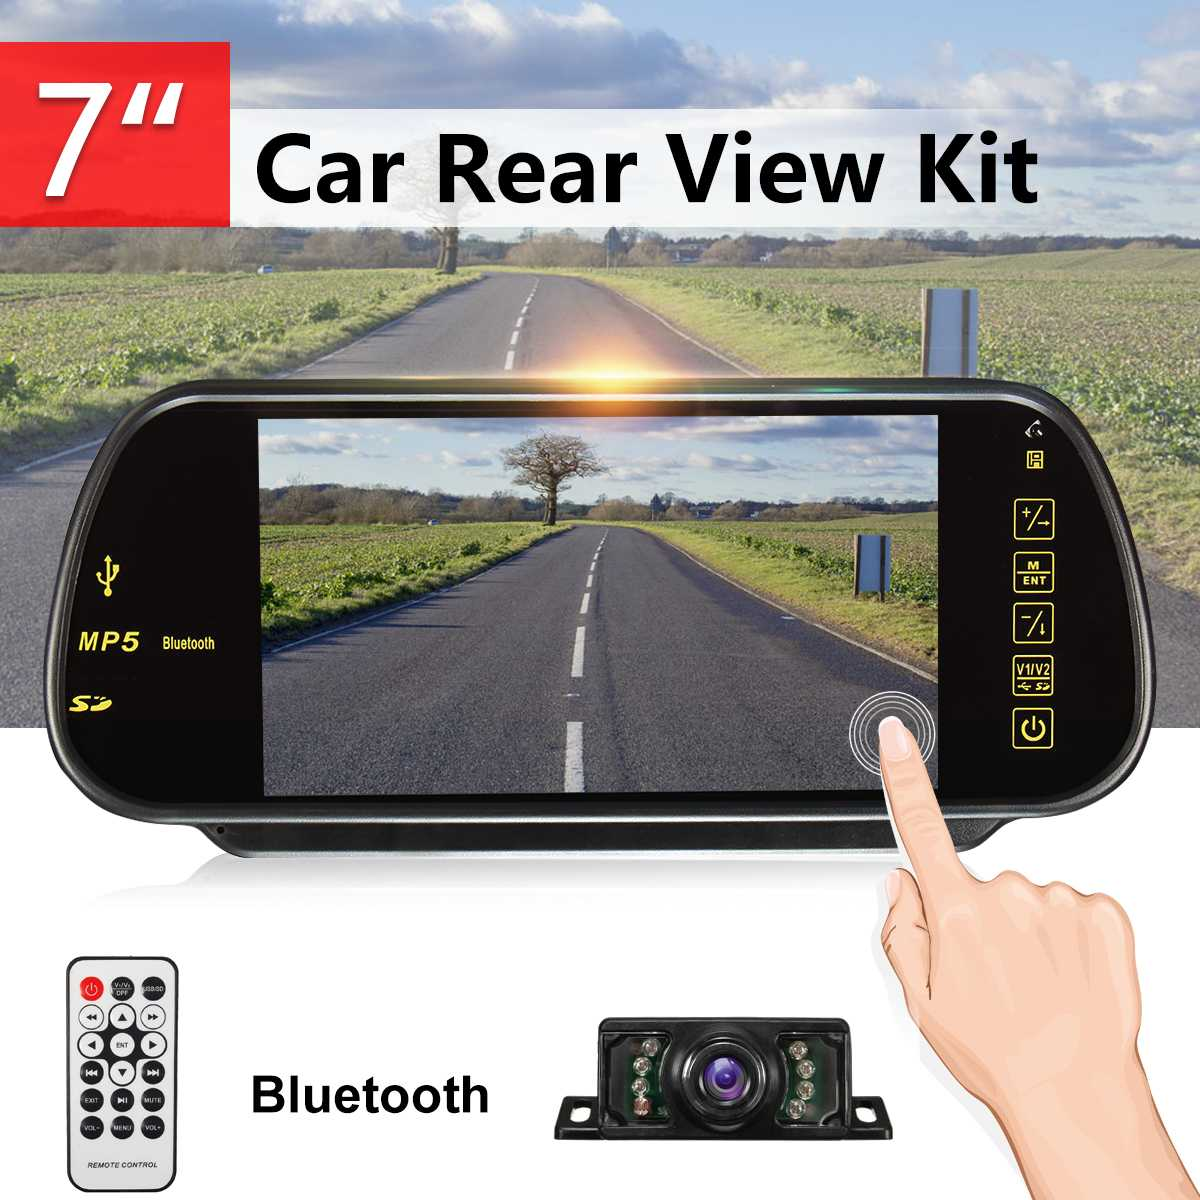 7 Inch TFT LCD Touch Screen bluetooth Car MP5 Player FM Transmitter Reversing Backup Camera Car Rear View Parking Mirror Monitor7 Inch TFT LCD Touch Screen bluetooth Car MP5 Player FM Transmitter Reversing Backup Camera Car Rear View Parking Mirror Monitor